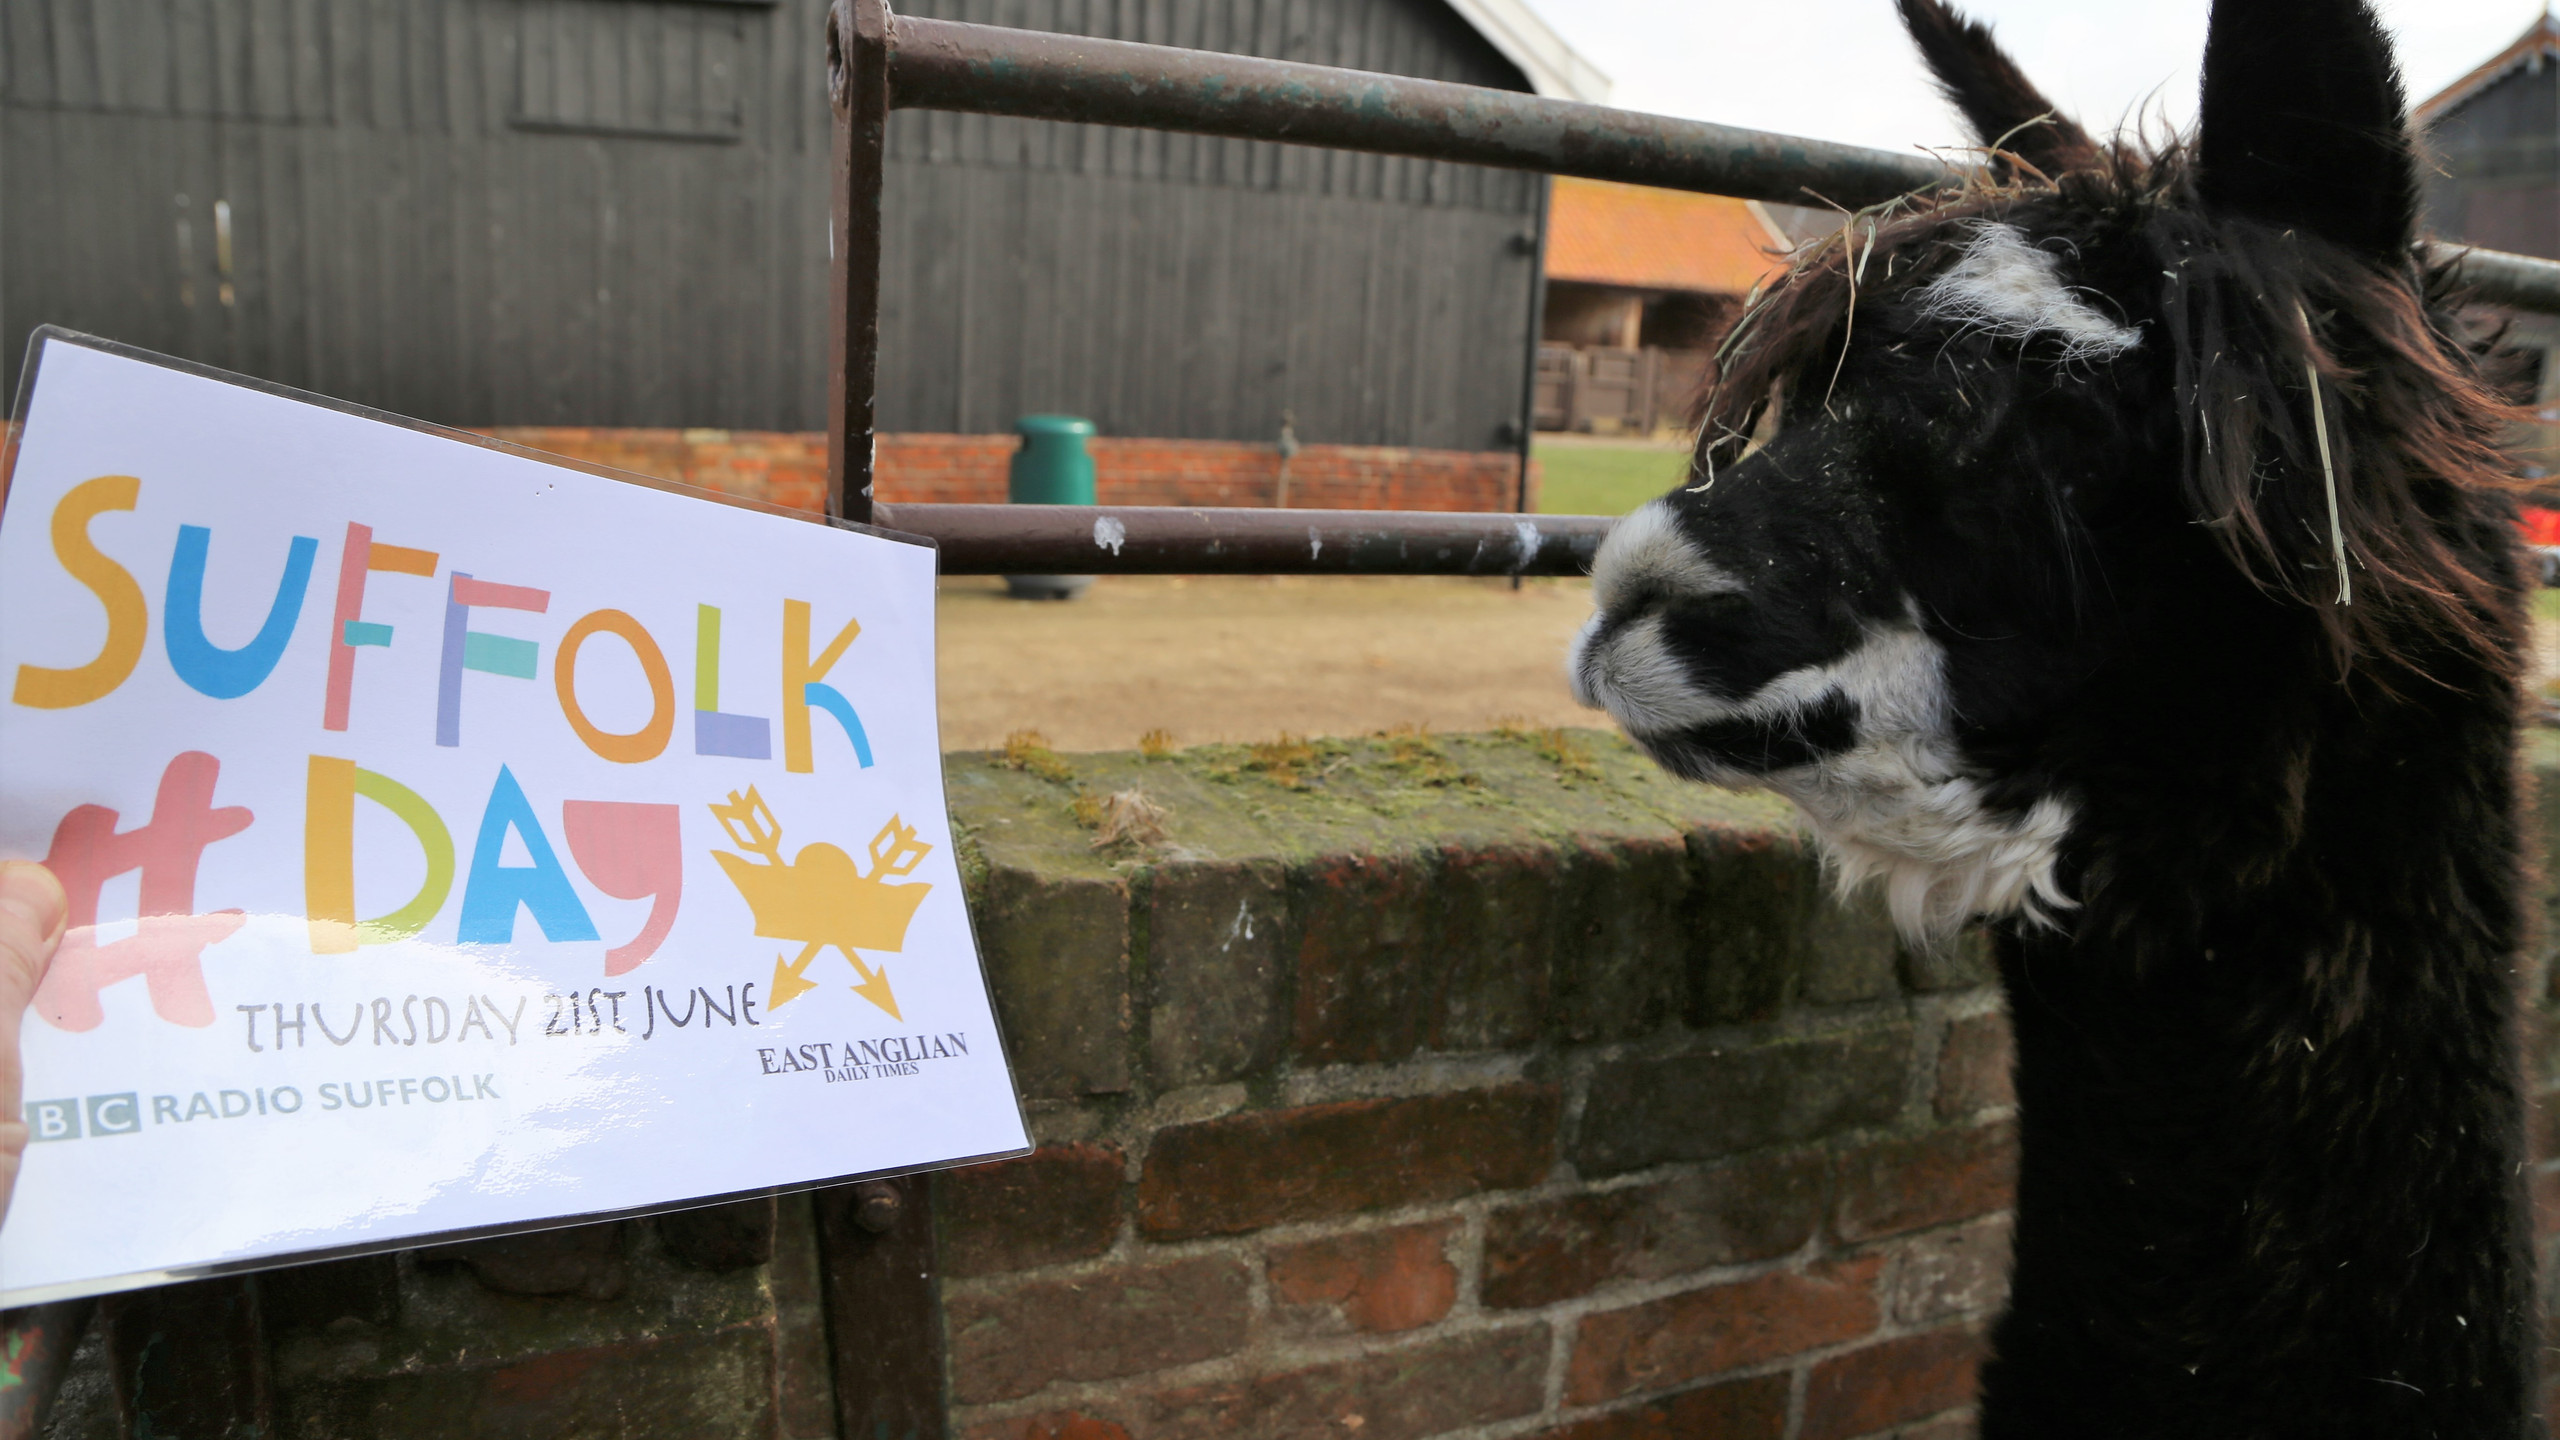 The alpaca cant wait for Suffolk Day